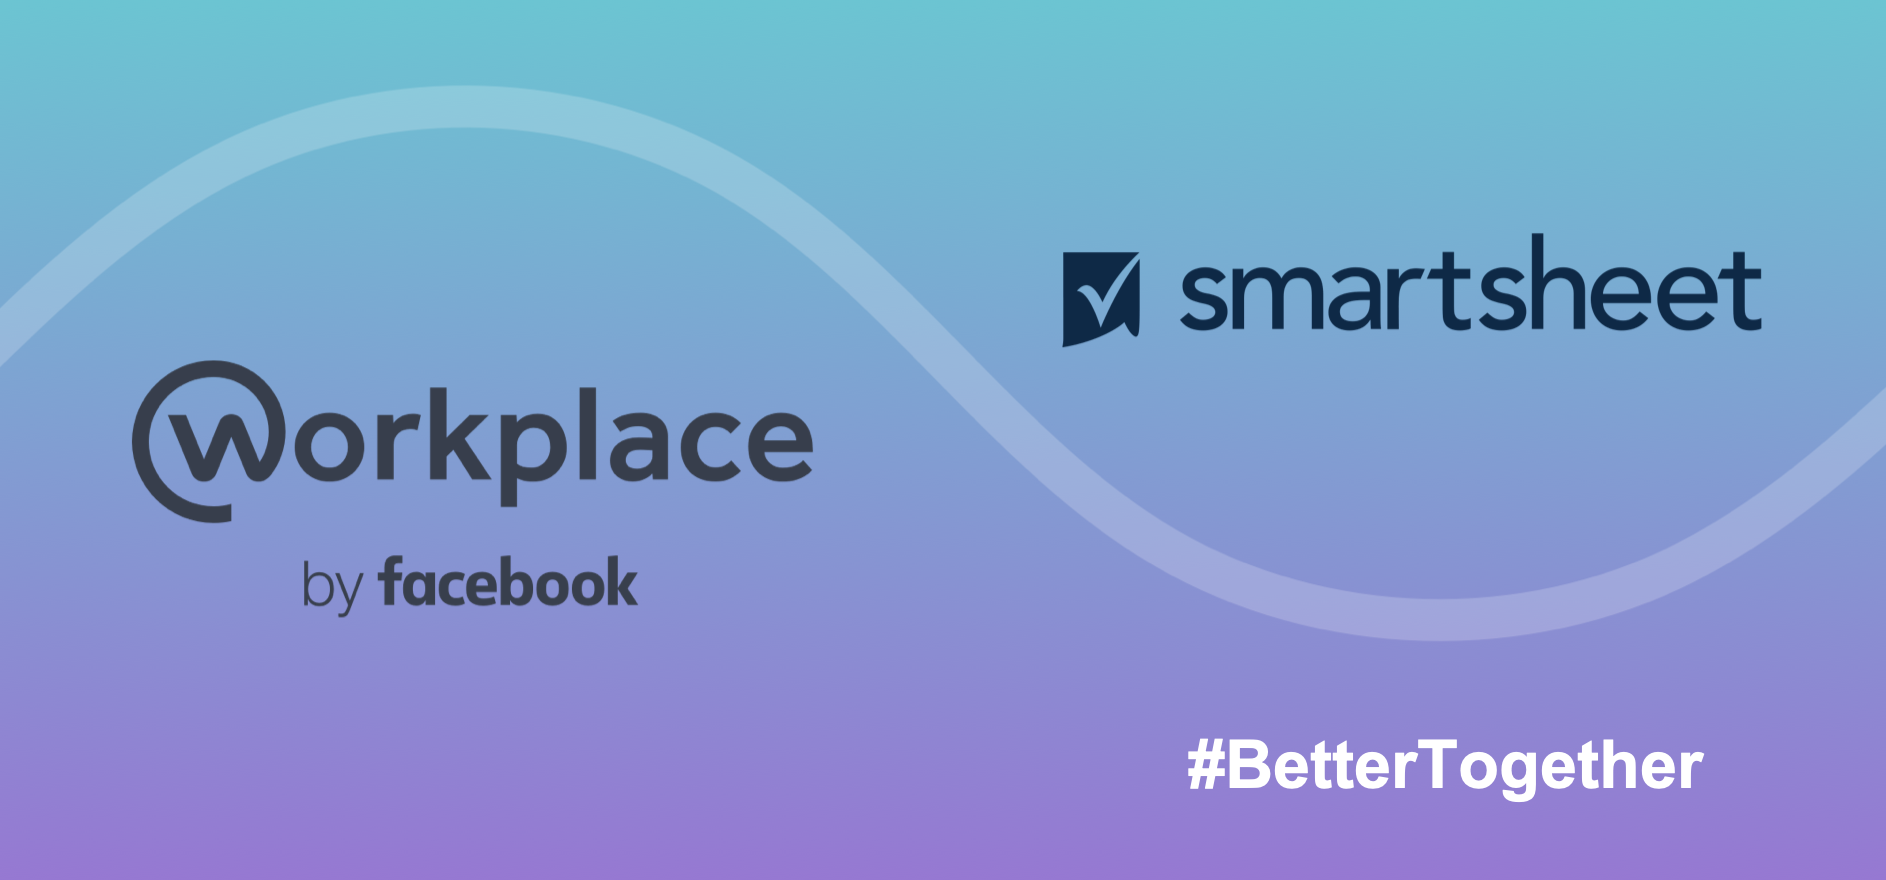 Workplace by Facebook and Smartsheet